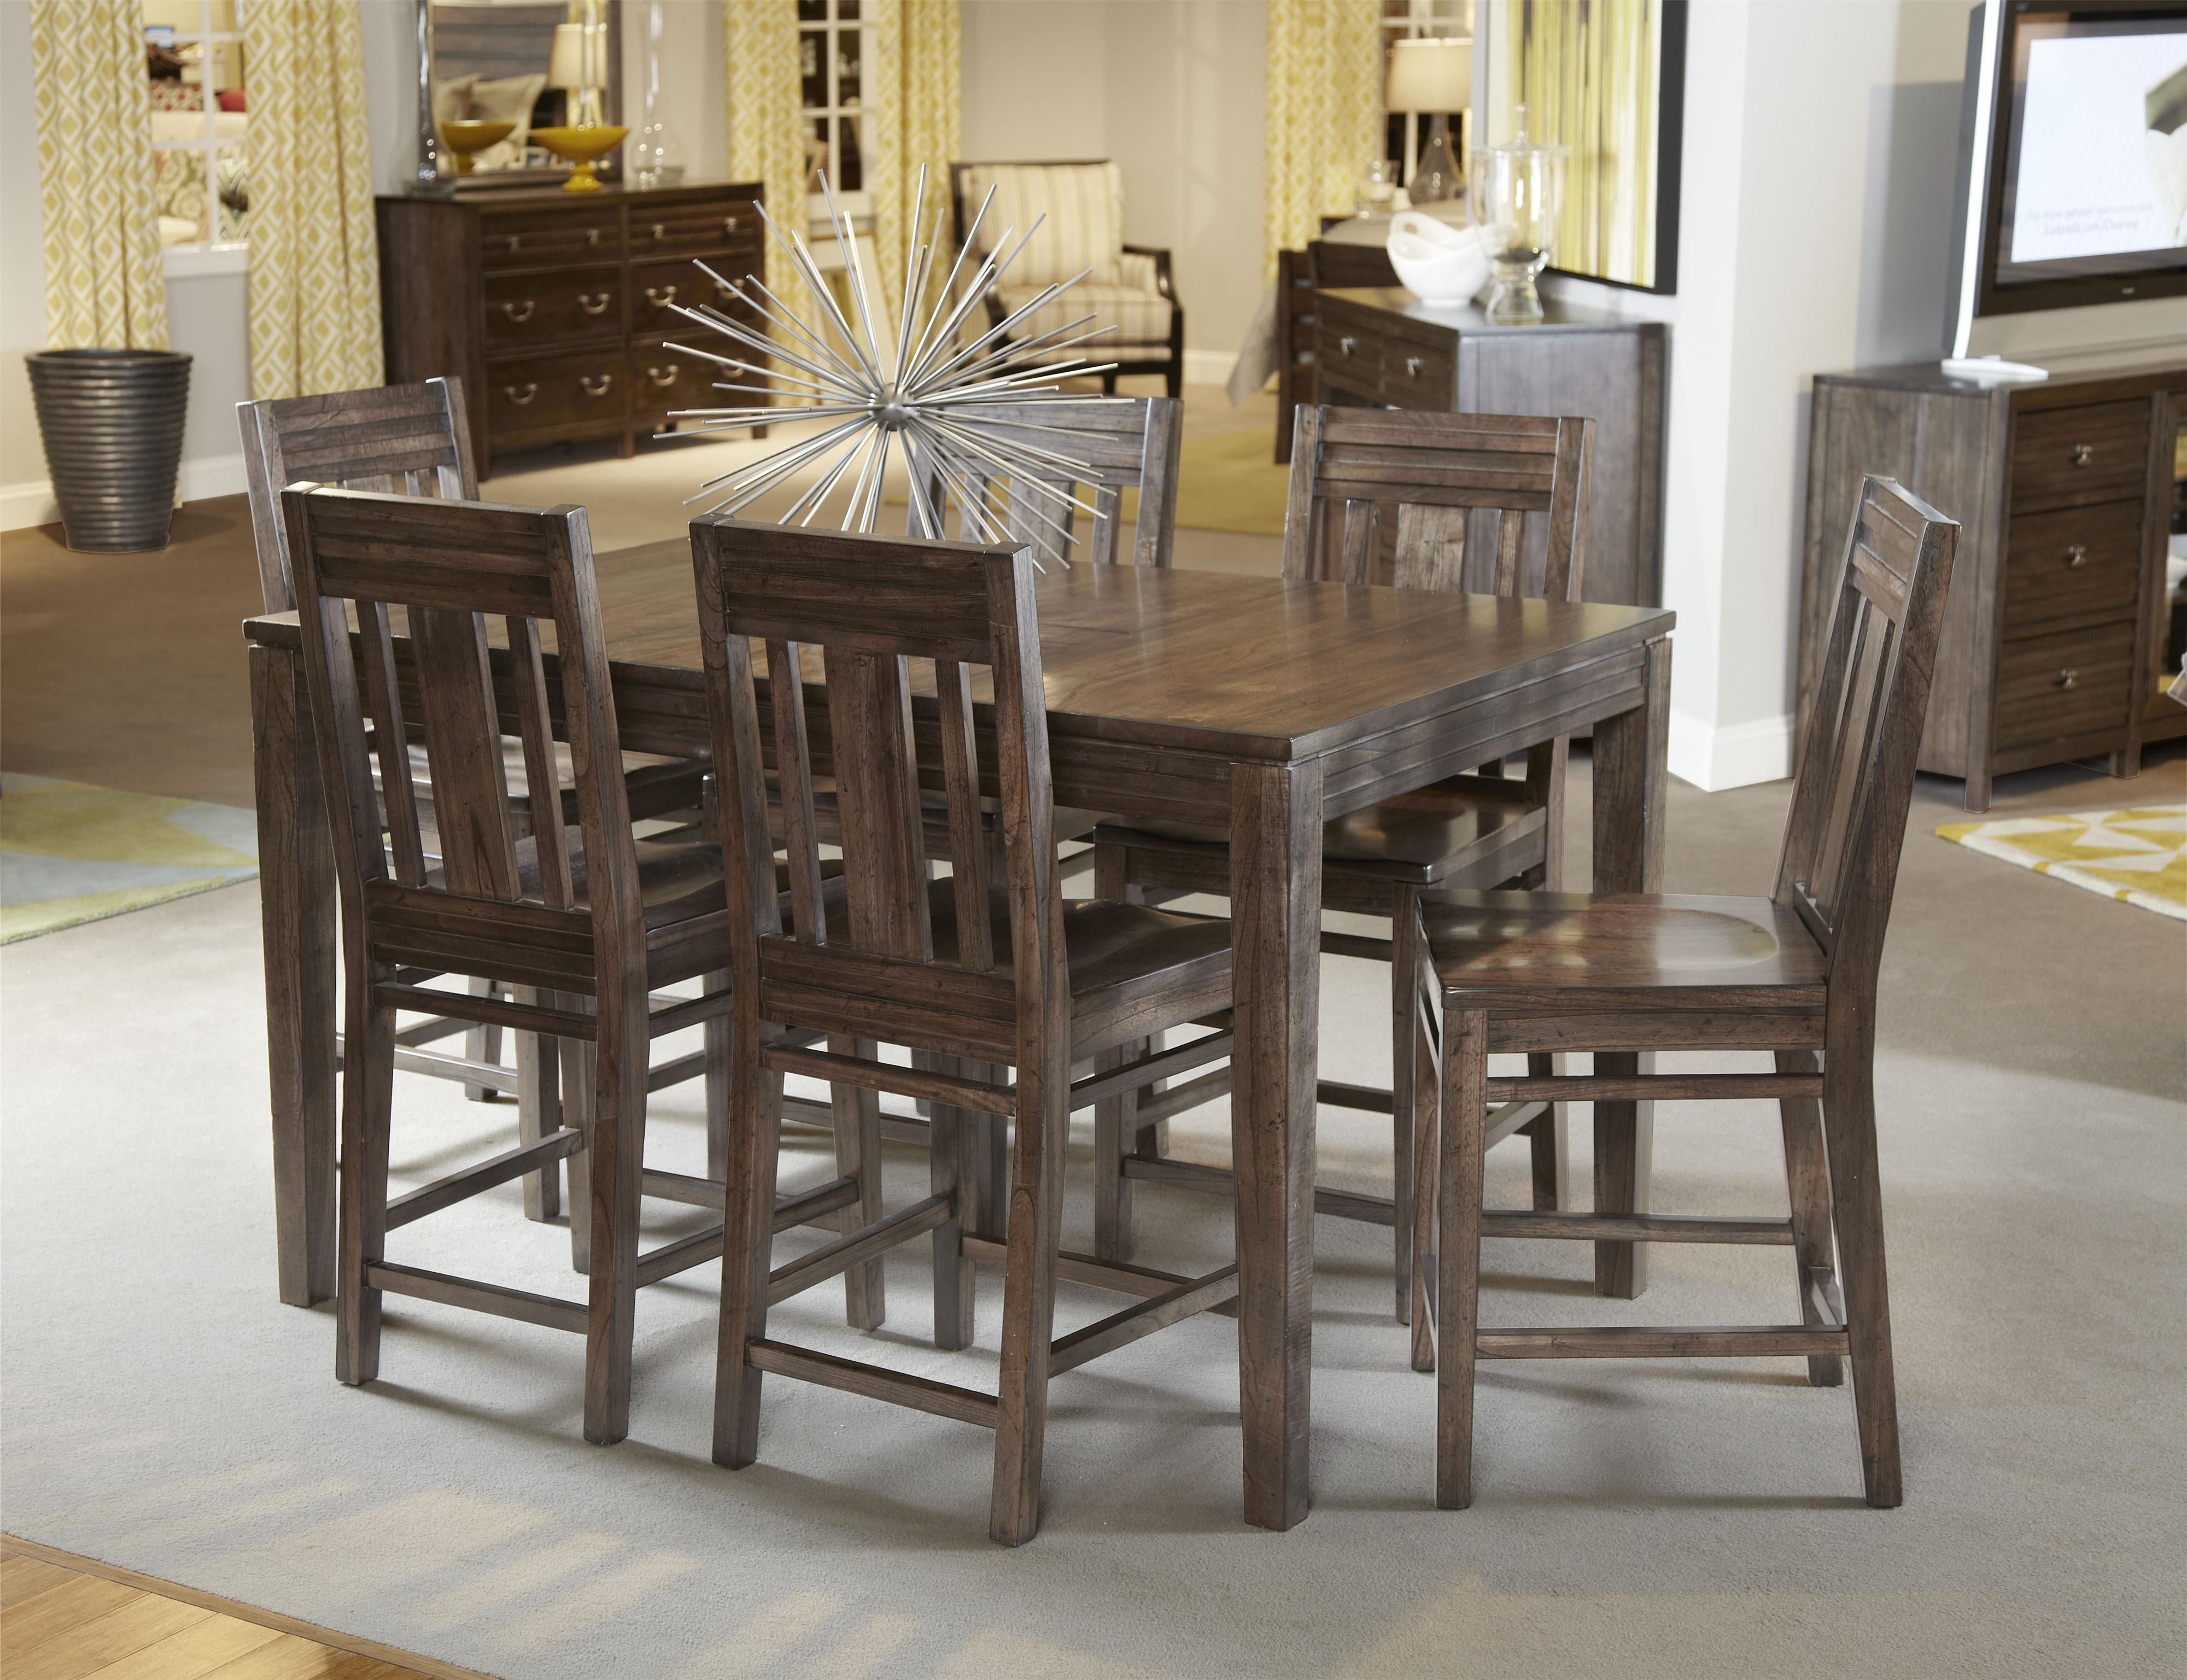 kincaid furniture montreat solid wood counter height dining table johnny janosik dining tables. Black Bedroom Furniture Sets. Home Design Ideas